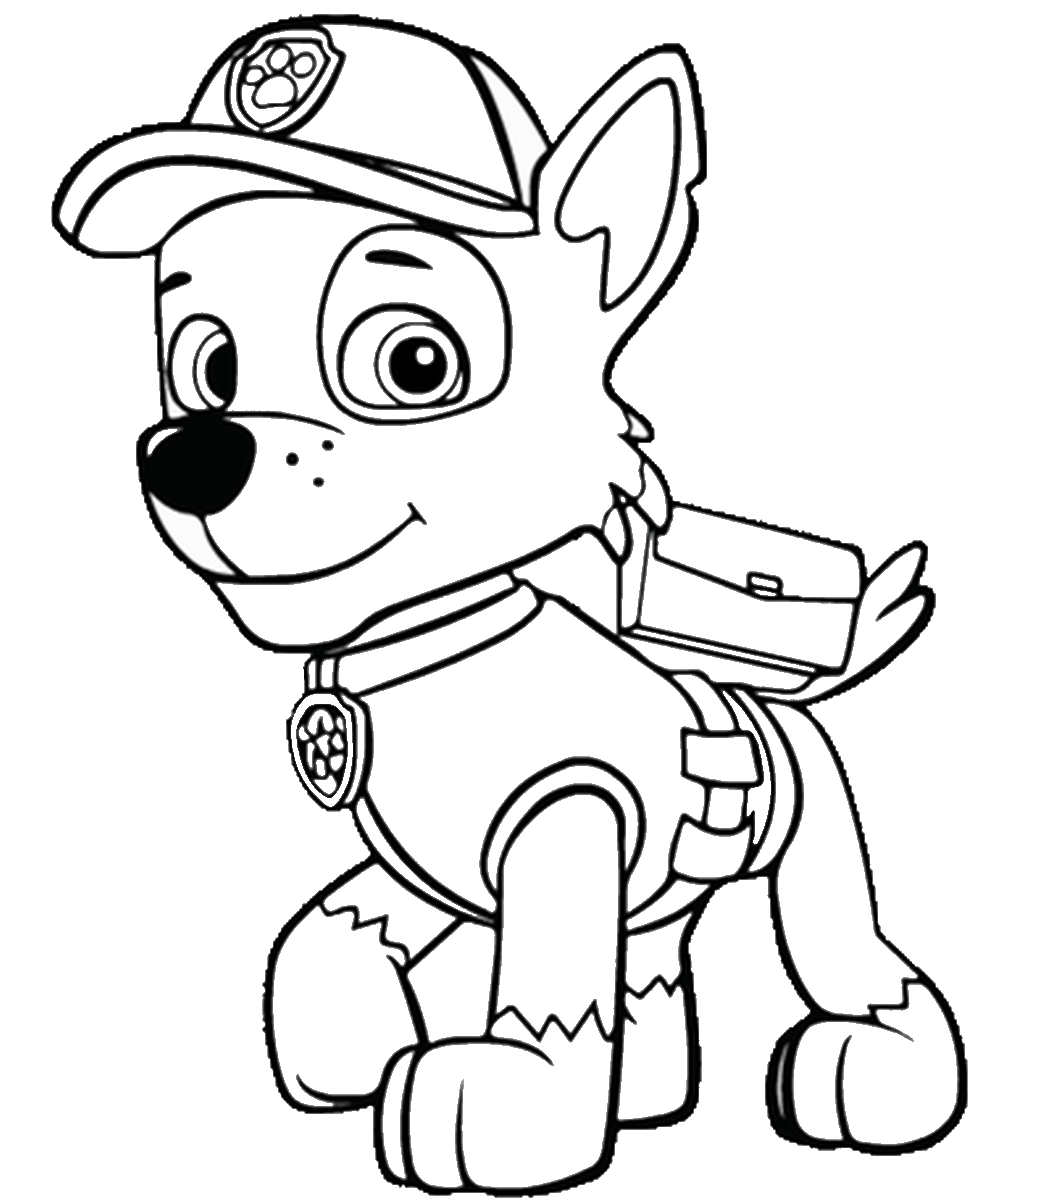 Paw Patrol Drawing at GetDrawings Free for personal